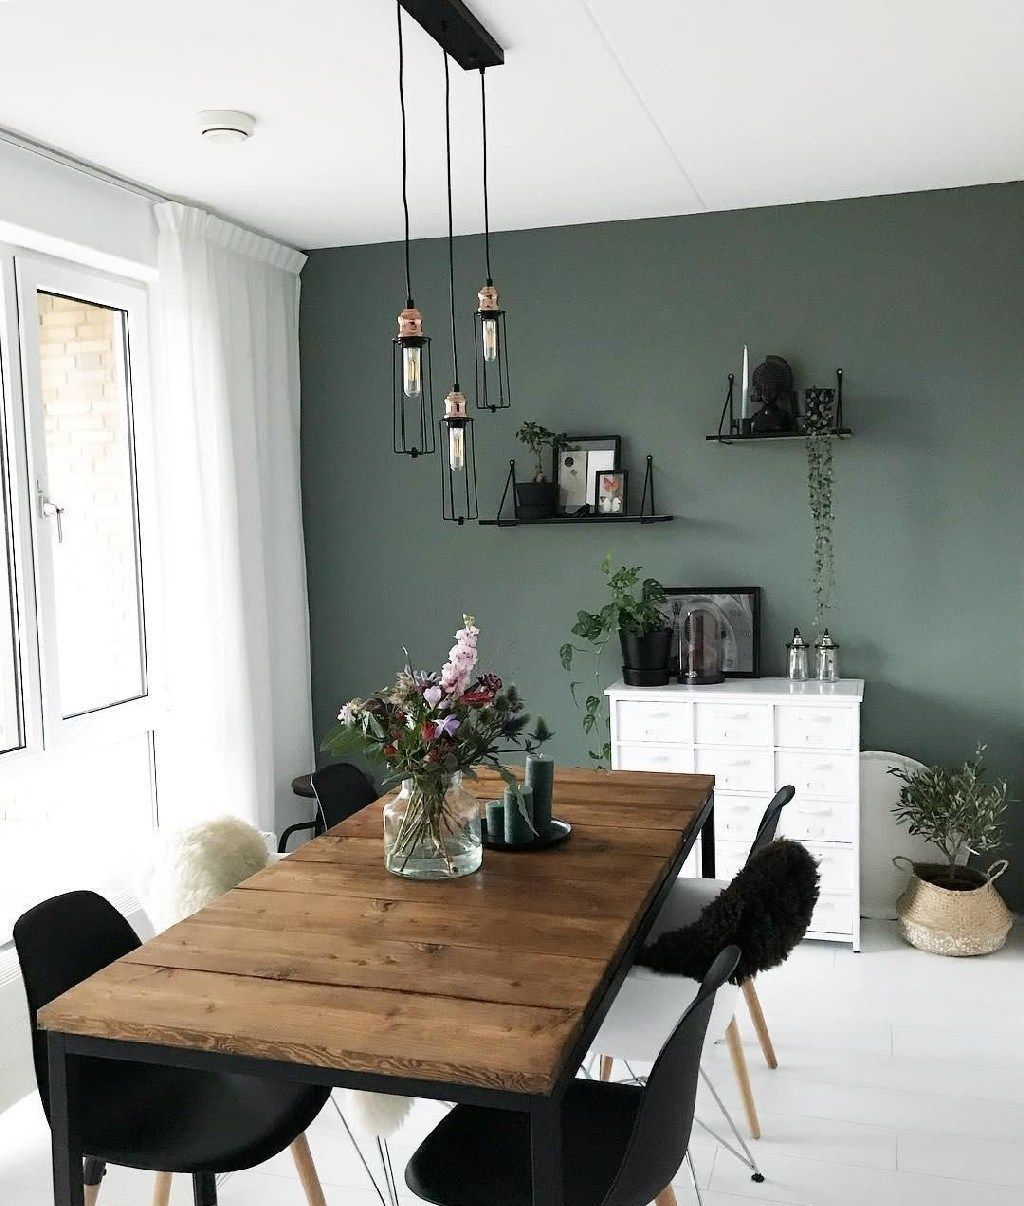 Best Amazing Color Harmony Design Ideas For Home Interior 35 Beautiful Dining Rooms Dining Room Paint Colors Dining Room Paint